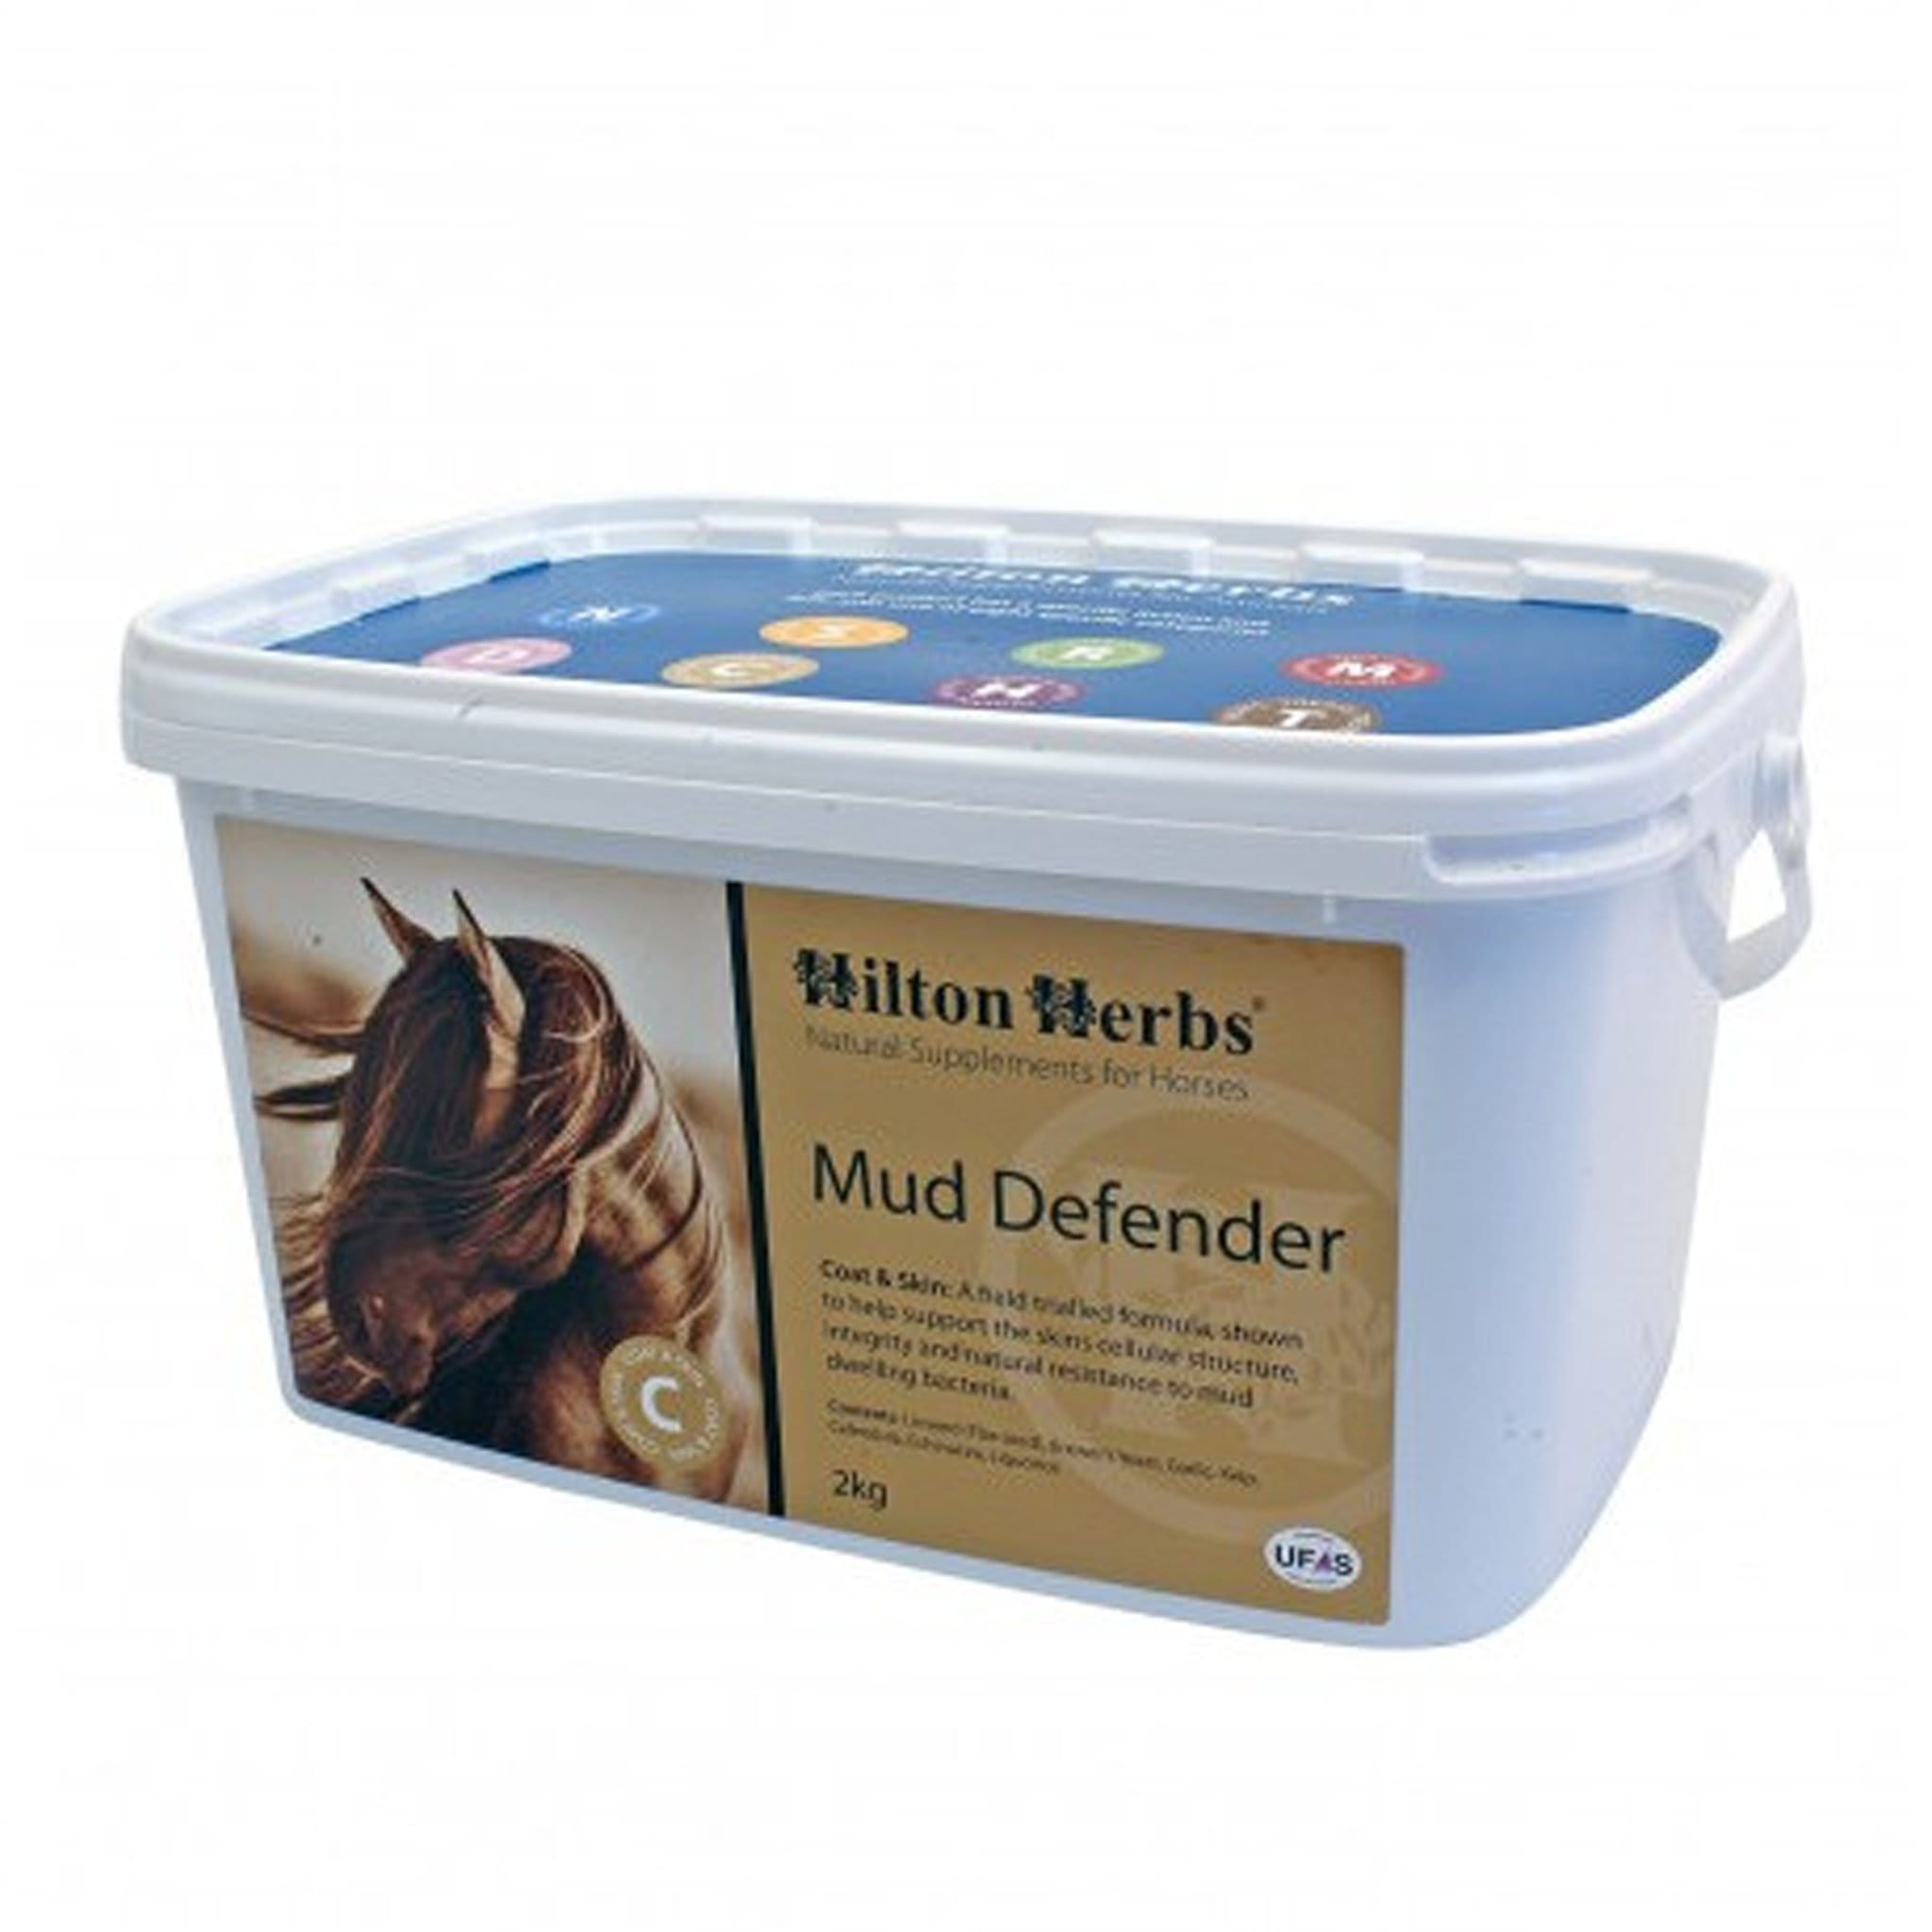 Hilton Herbs Mud Defender HHS0040